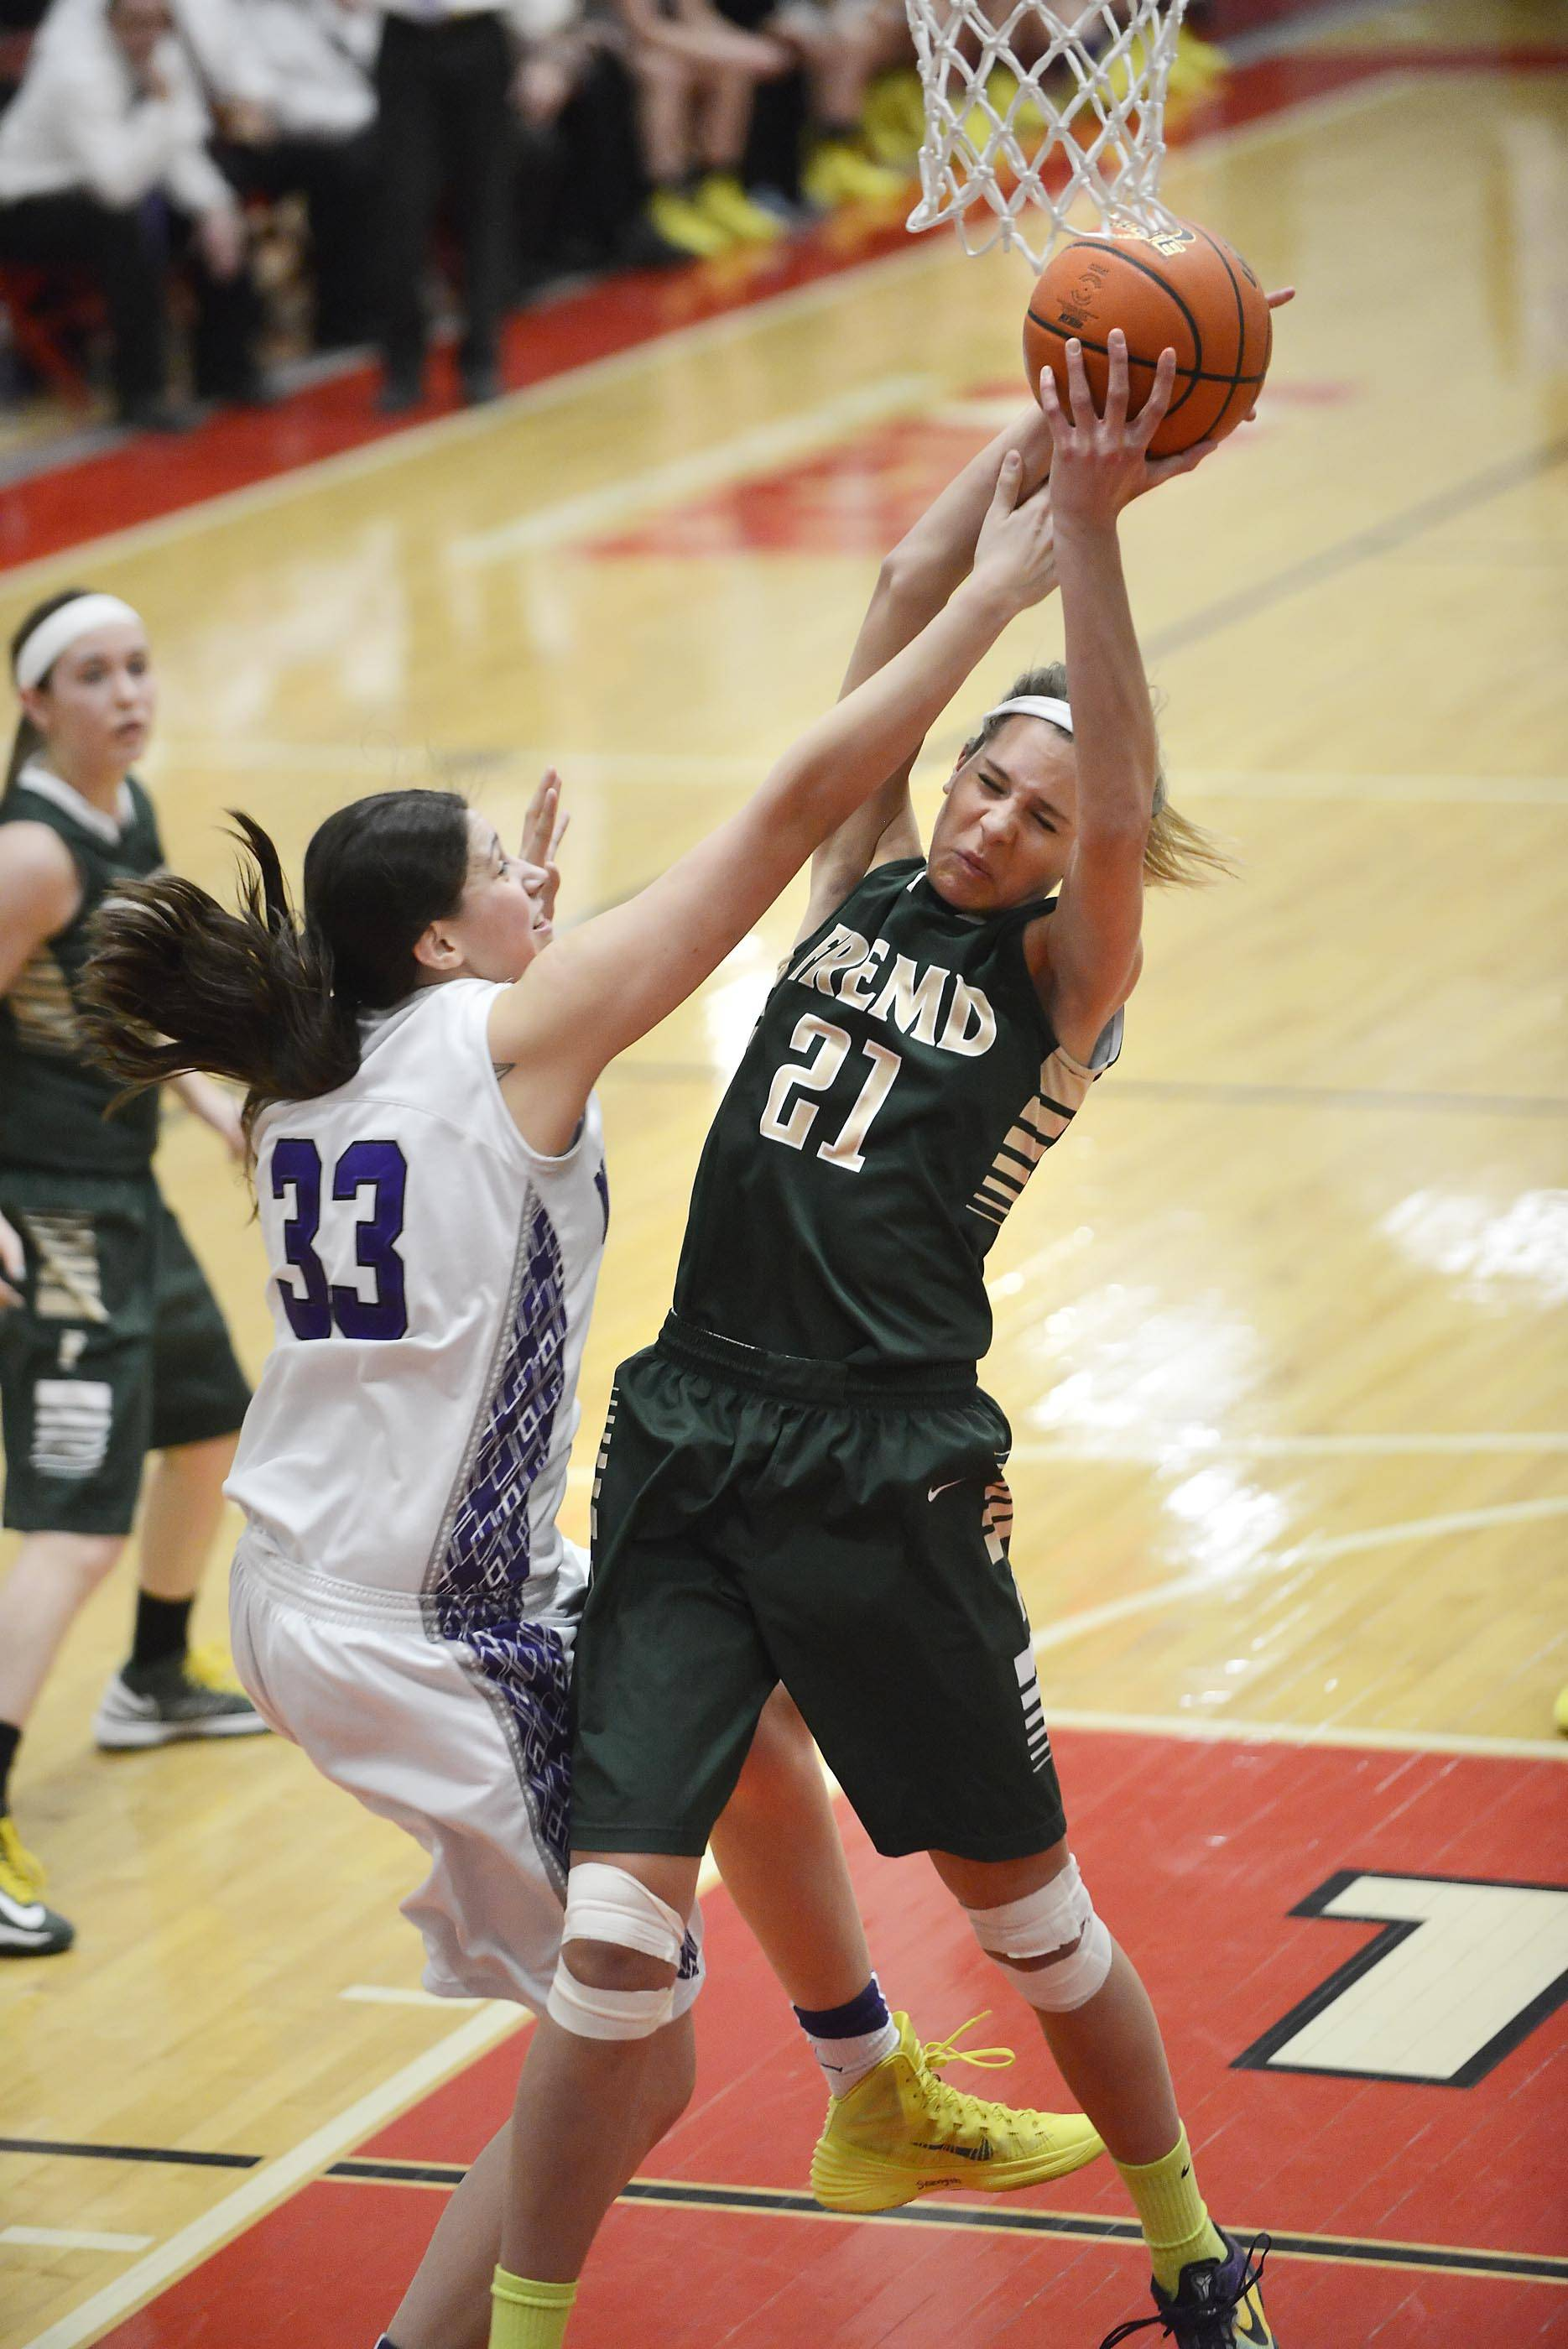 Fremd's Grace Tworek fights for a rebound with Rolling Meadows' Ashley Montanez on Thursday in the Barrington sectional championship game.